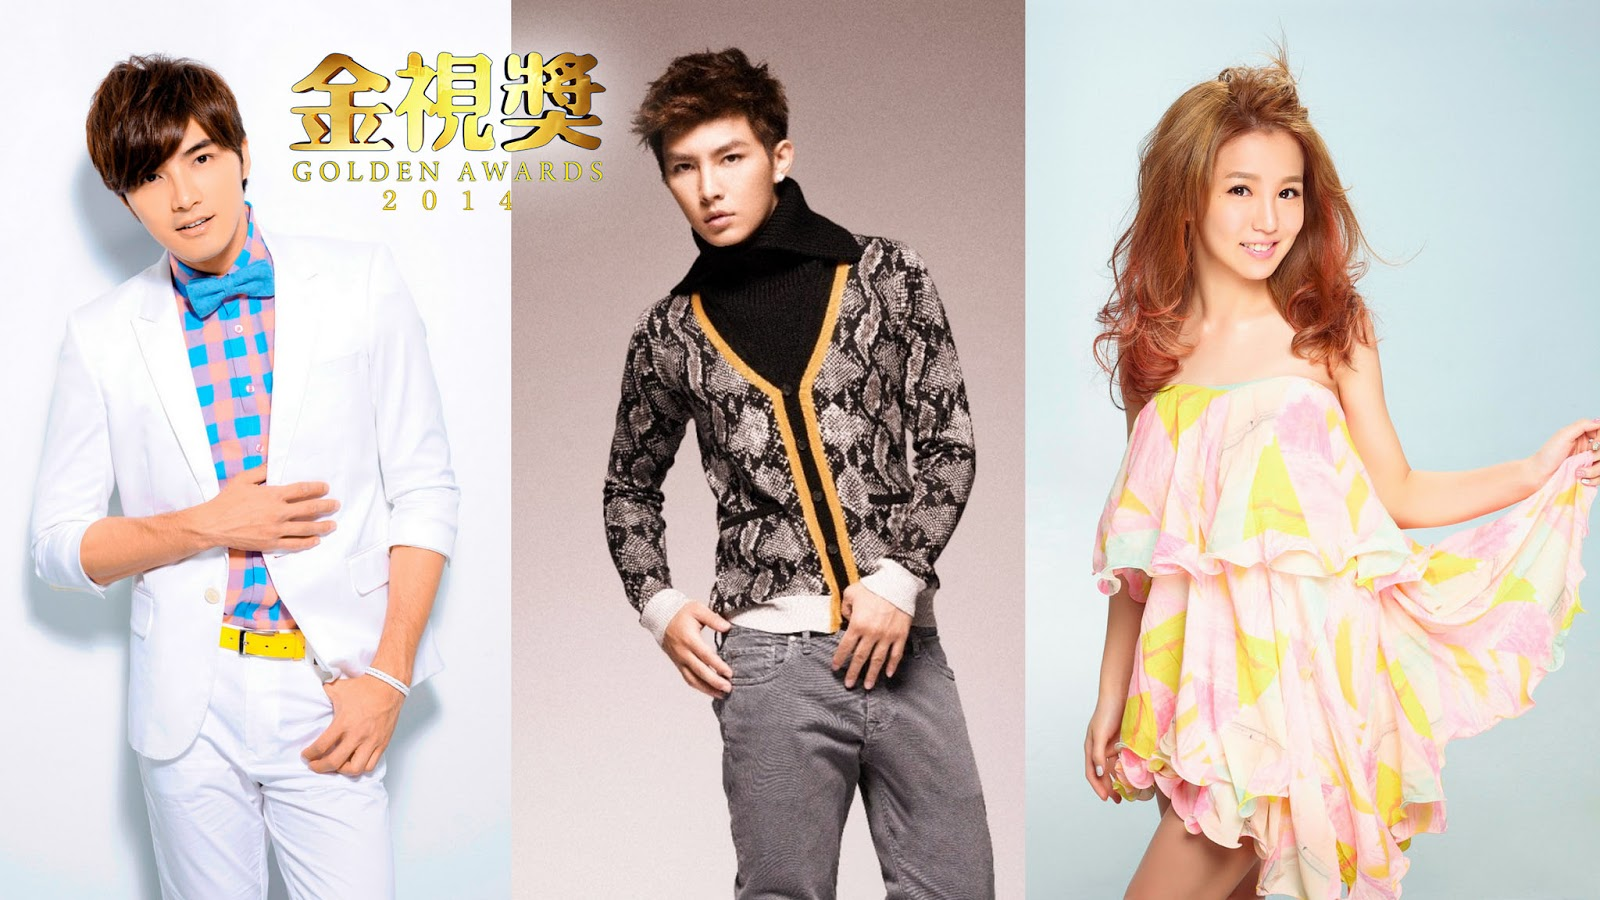 Mike He 賀軍翔, Aaron Yan 炎亚纶 and Guo Shu Yao 郭书瑶@ Golden Awards 2014